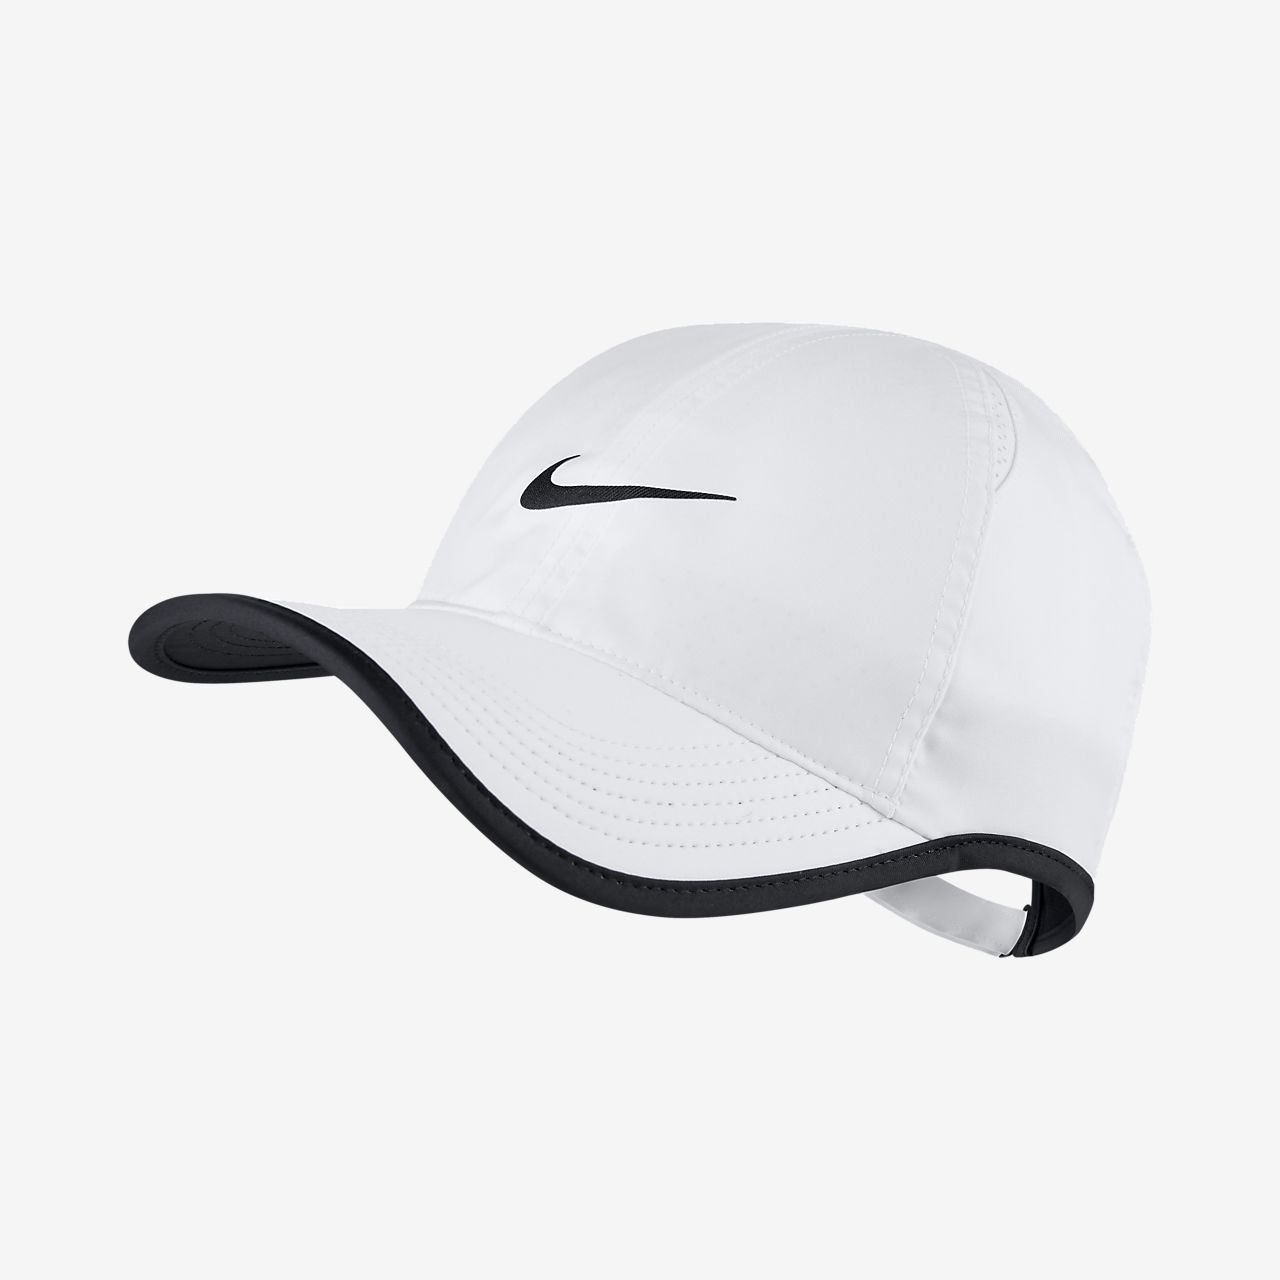 14118e949f5 NikeCourt Featherlight Adjustable Tennis Hat. Nike.com